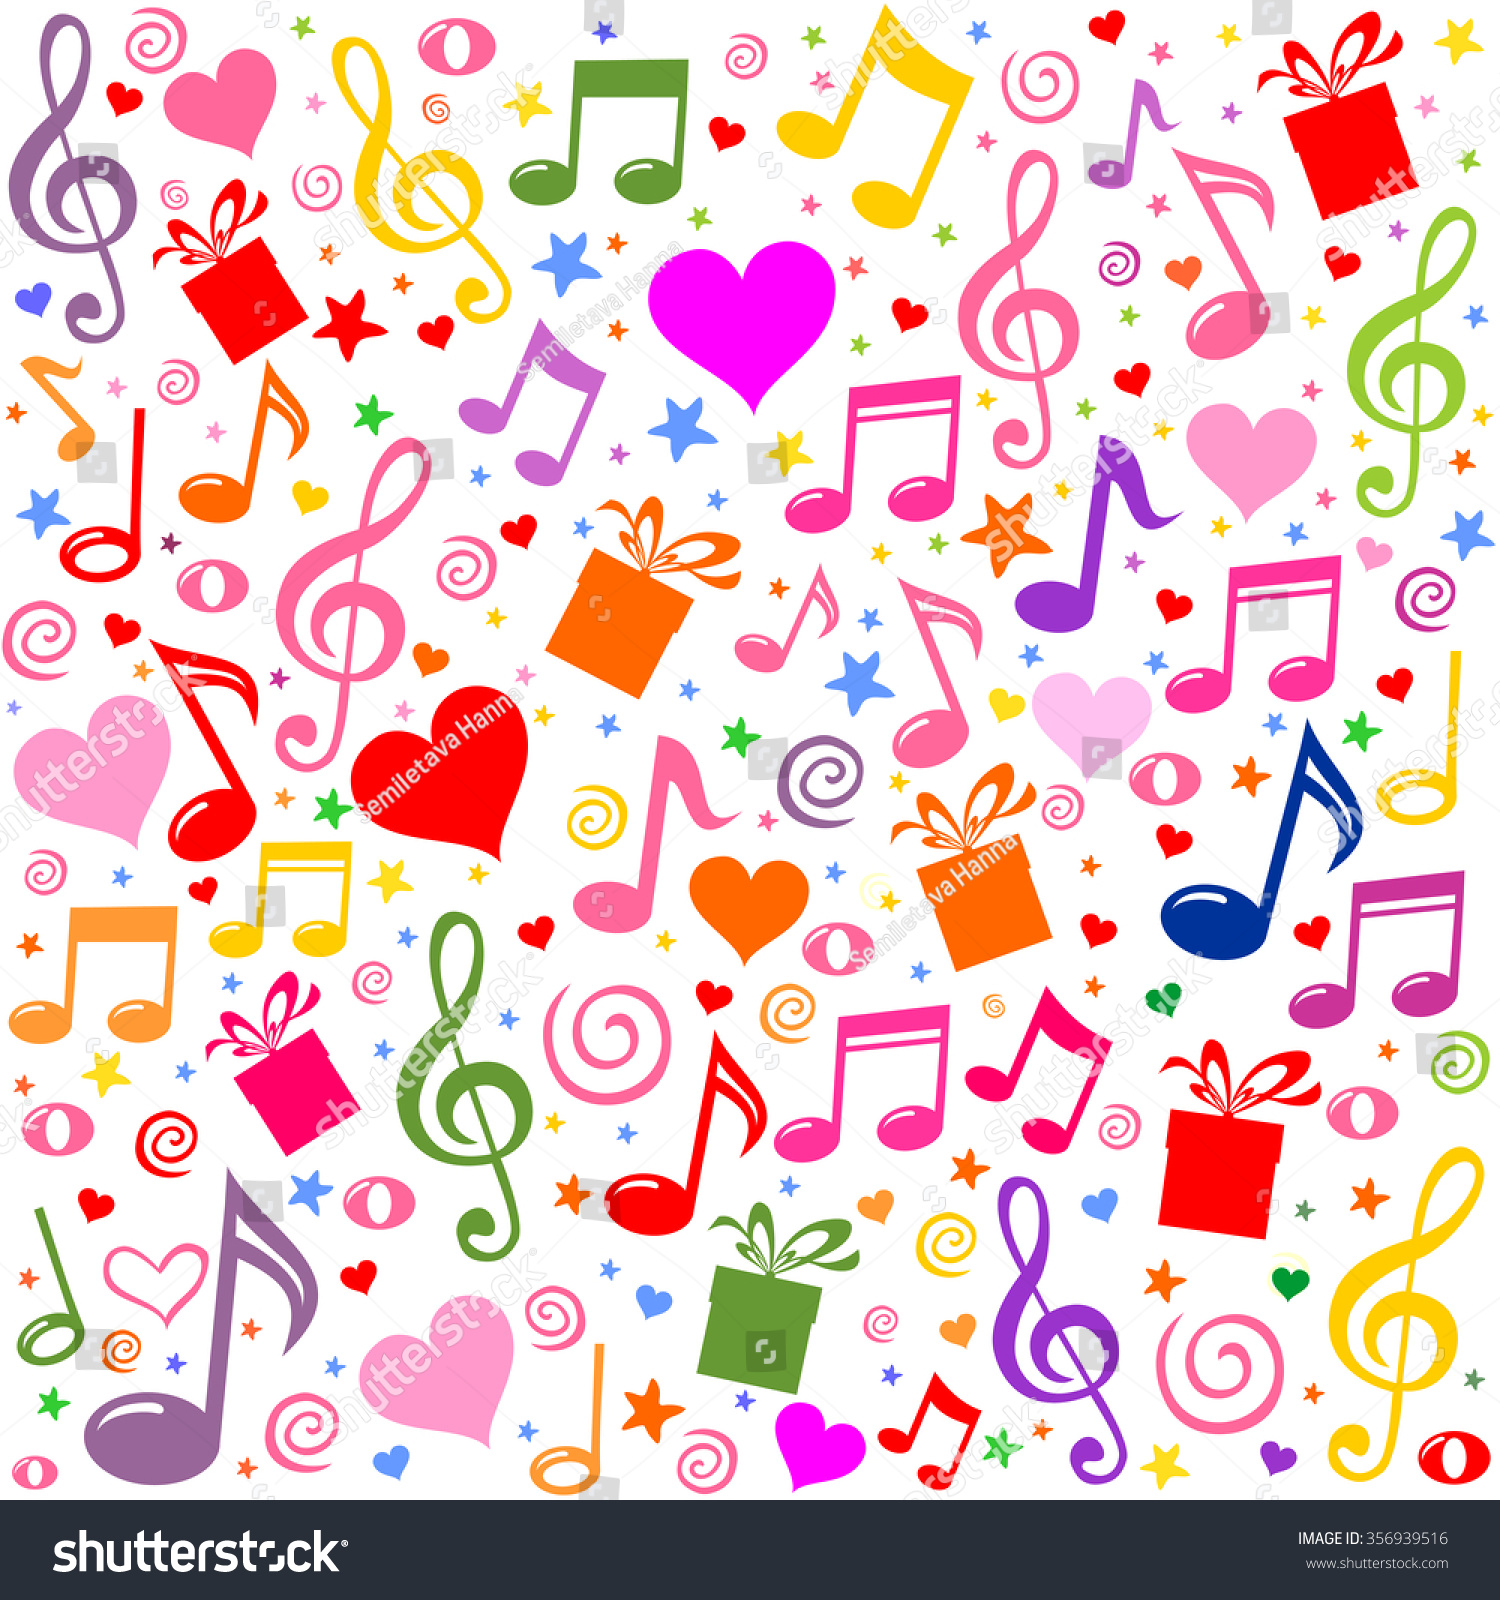 Cool Wallpaper Music Pattern - stock-vector-seamless-pattern-wallpaper-of-musical-notes-gift-box-heart-vector-illustration-356939516  Collection_244178.jpg